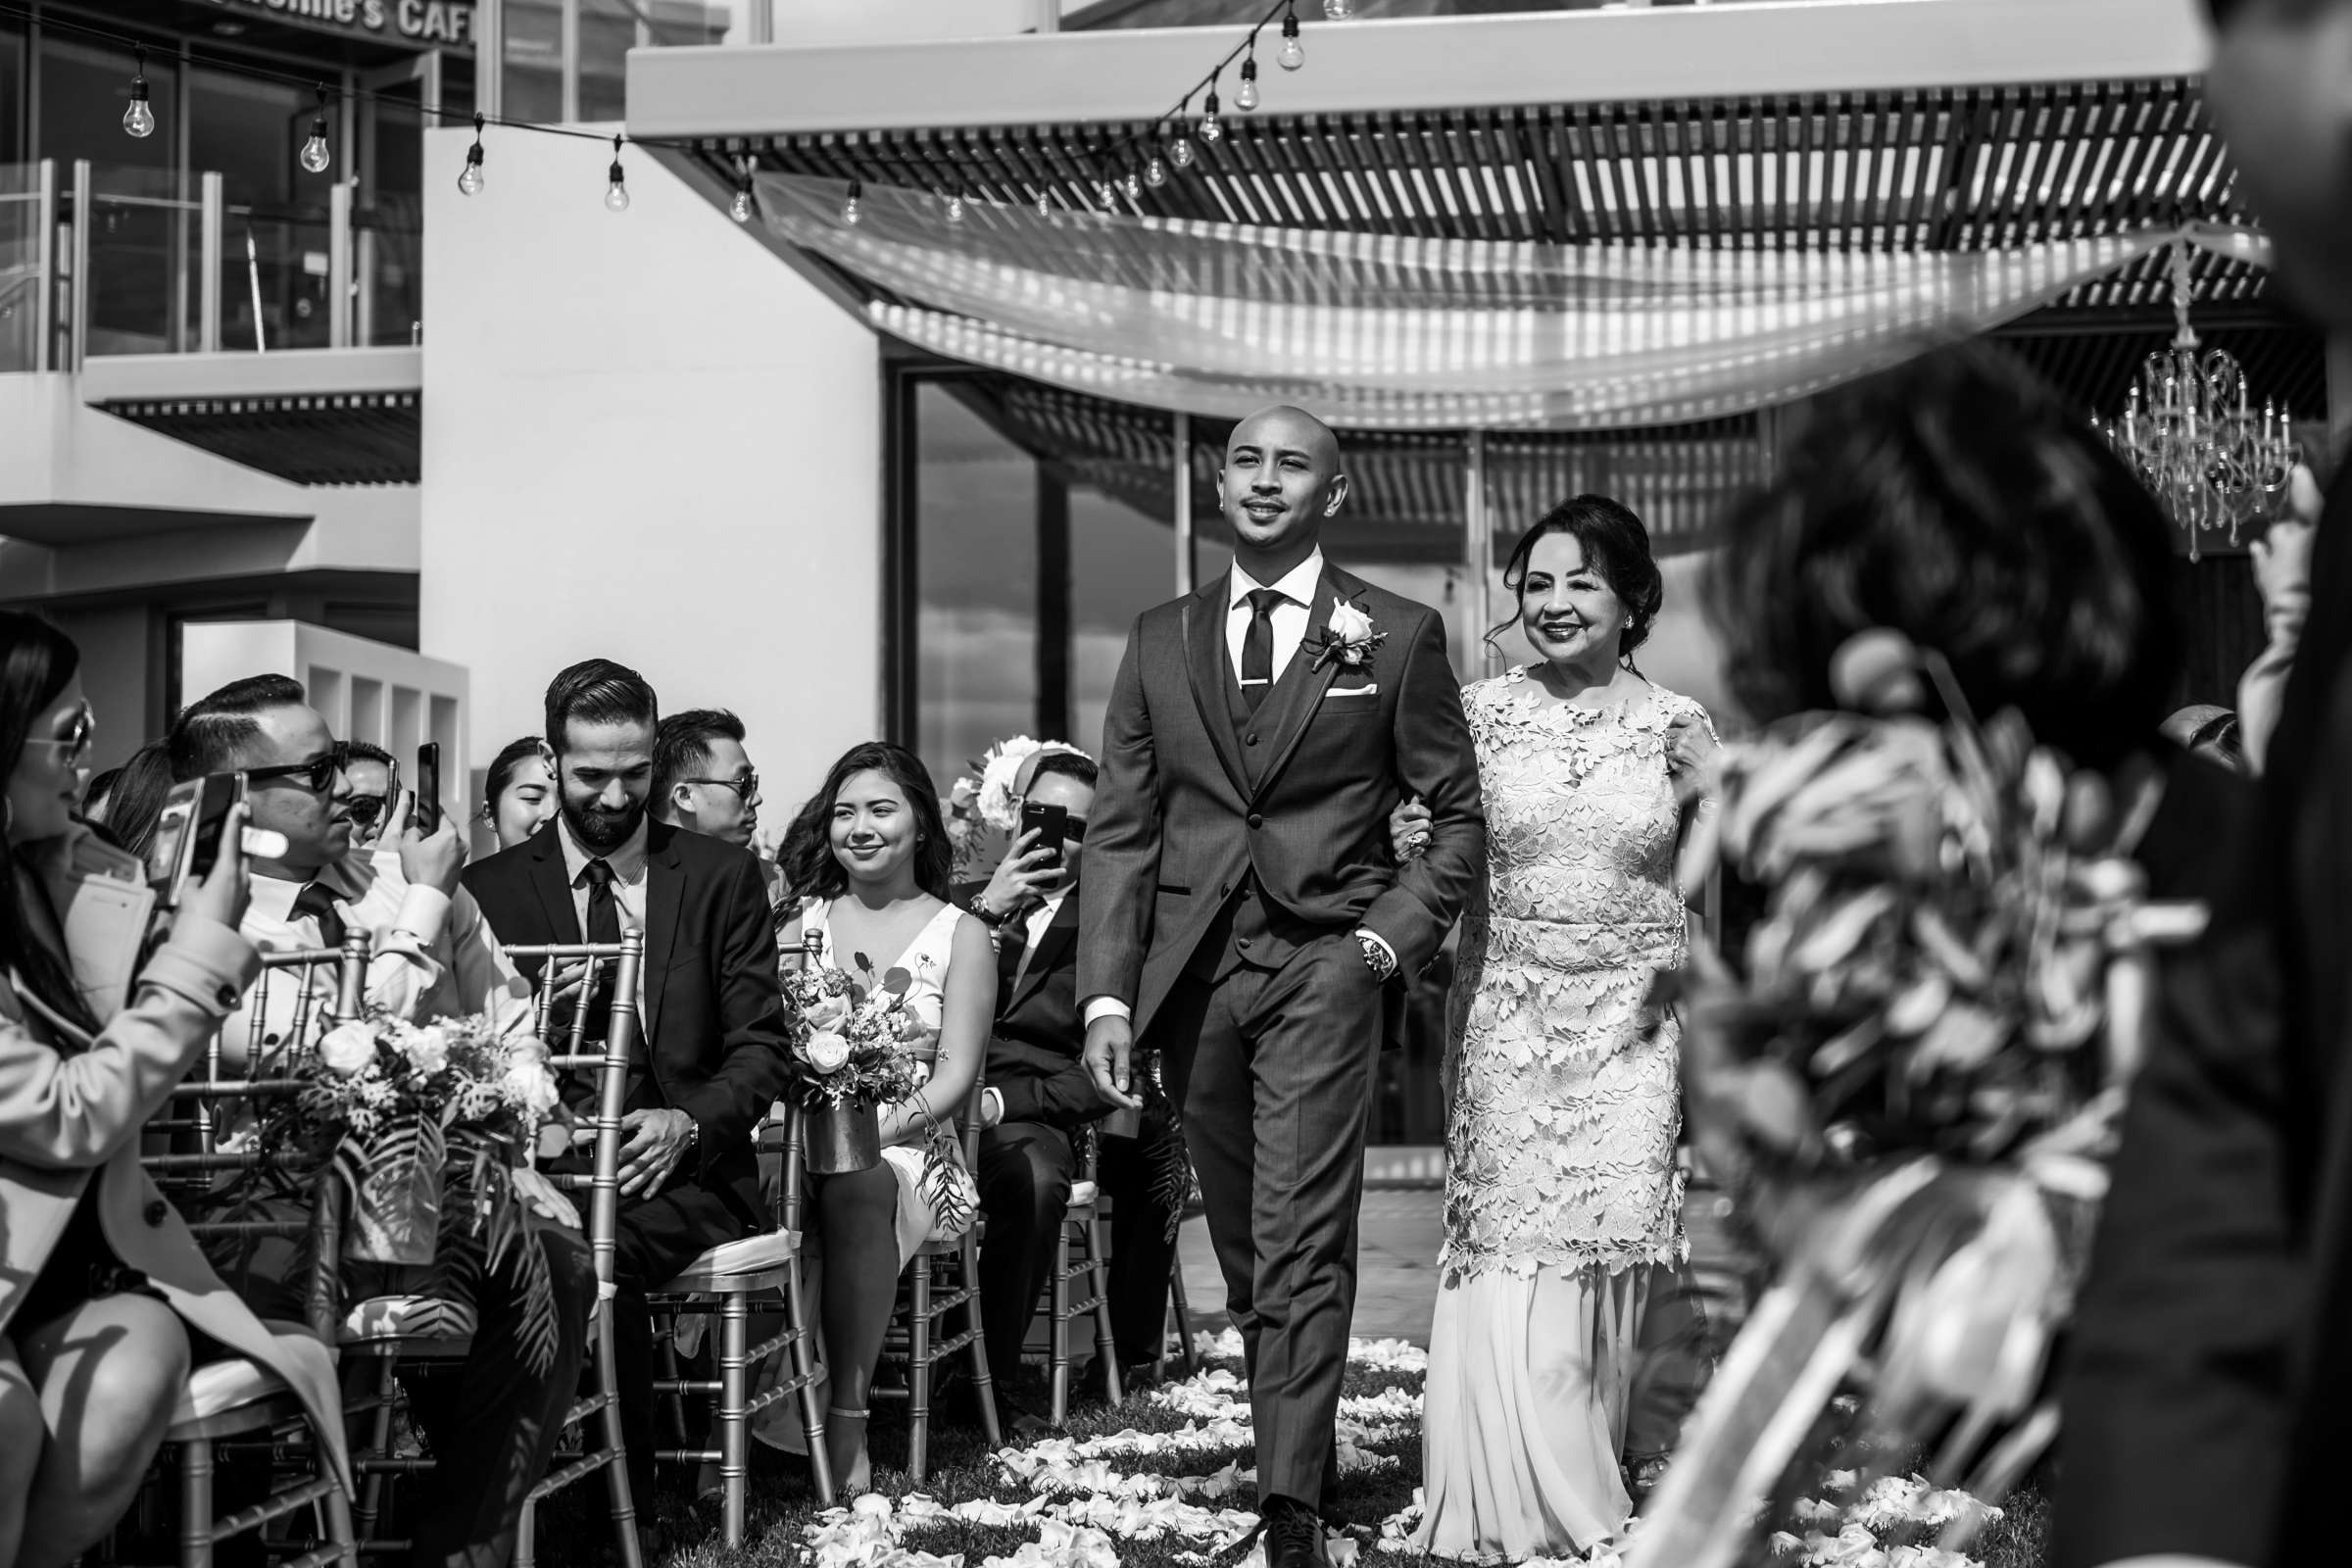 Scripps Seaside Forum Wedding coordinated by Lavish Weddings, Cindy and Justin Wedding Photo #381810 by True Photography